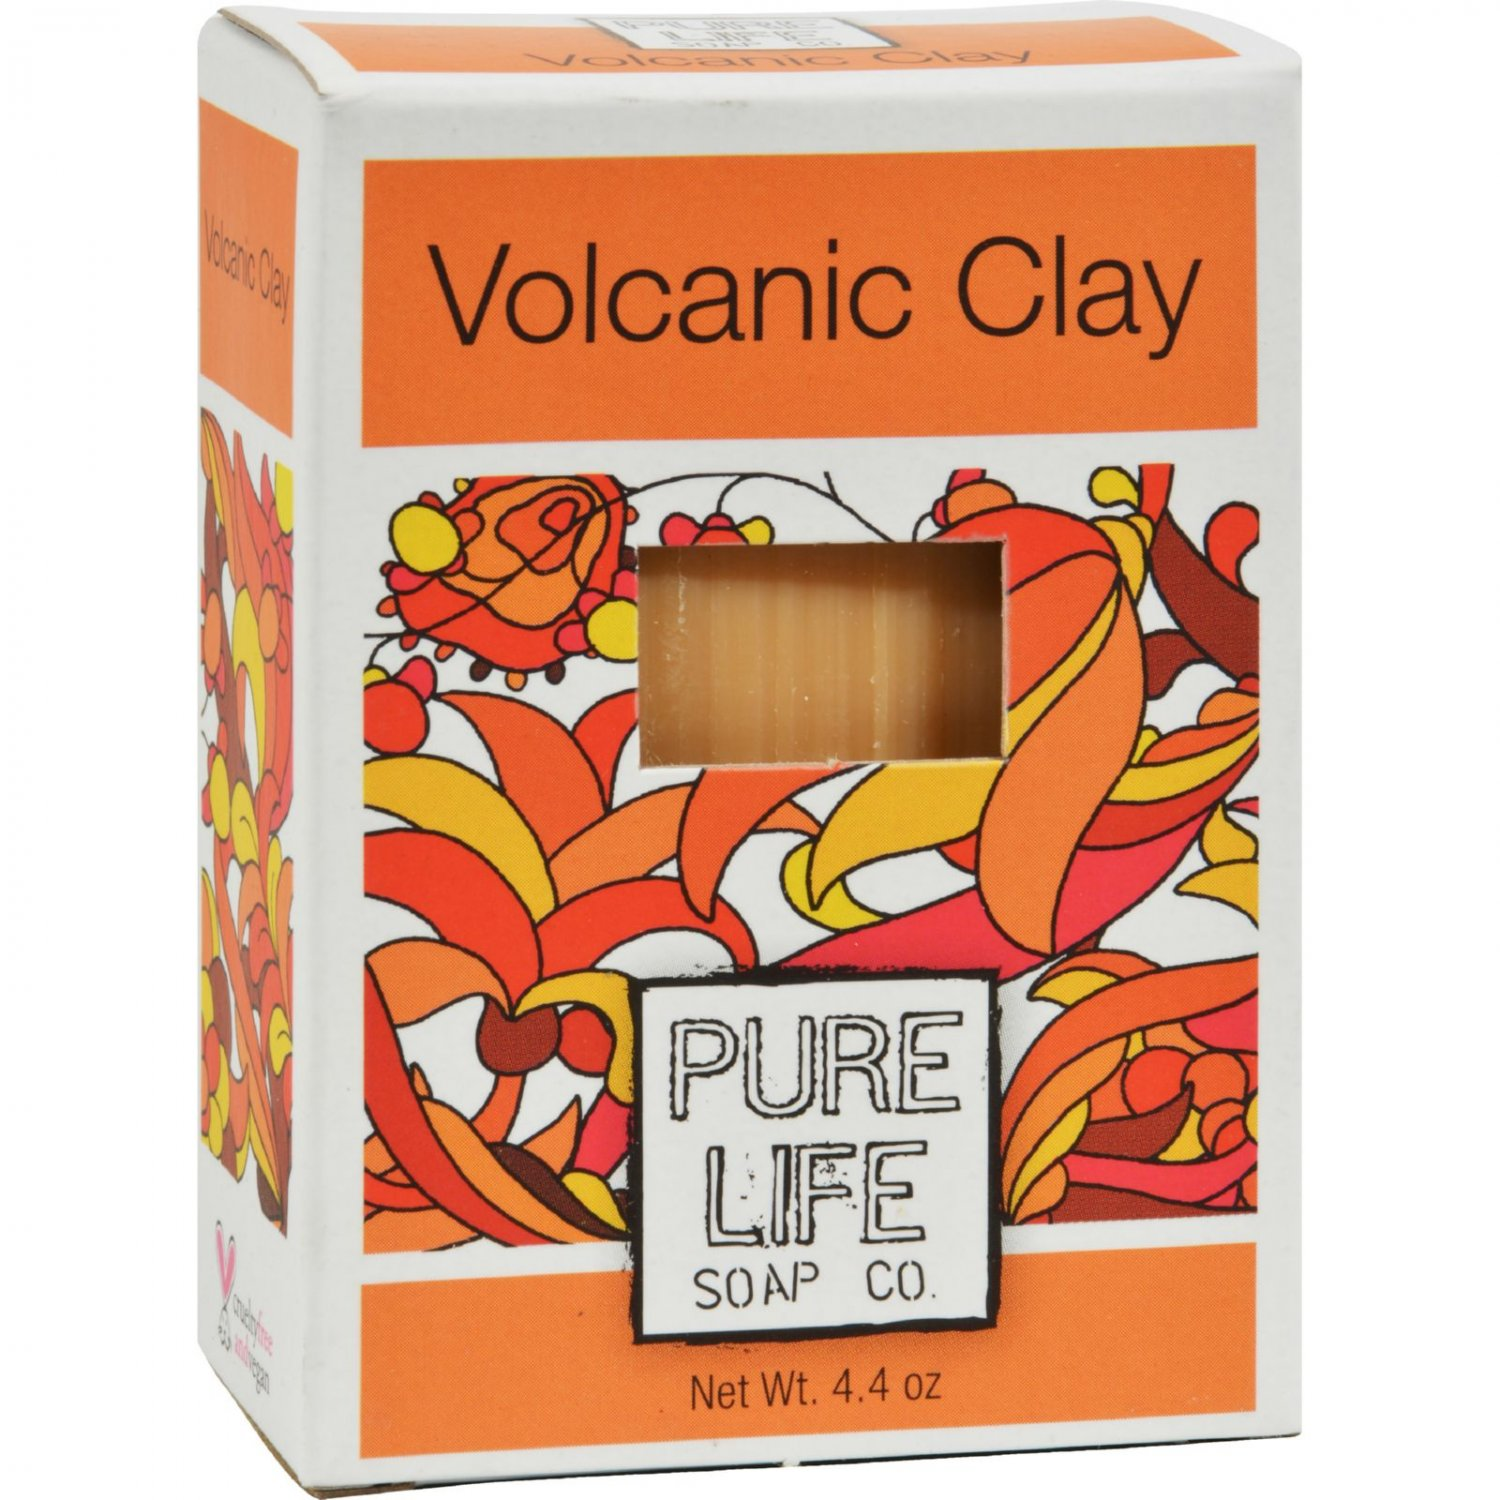 Pure Life Volcanic Clay Soap - 4.4 oz